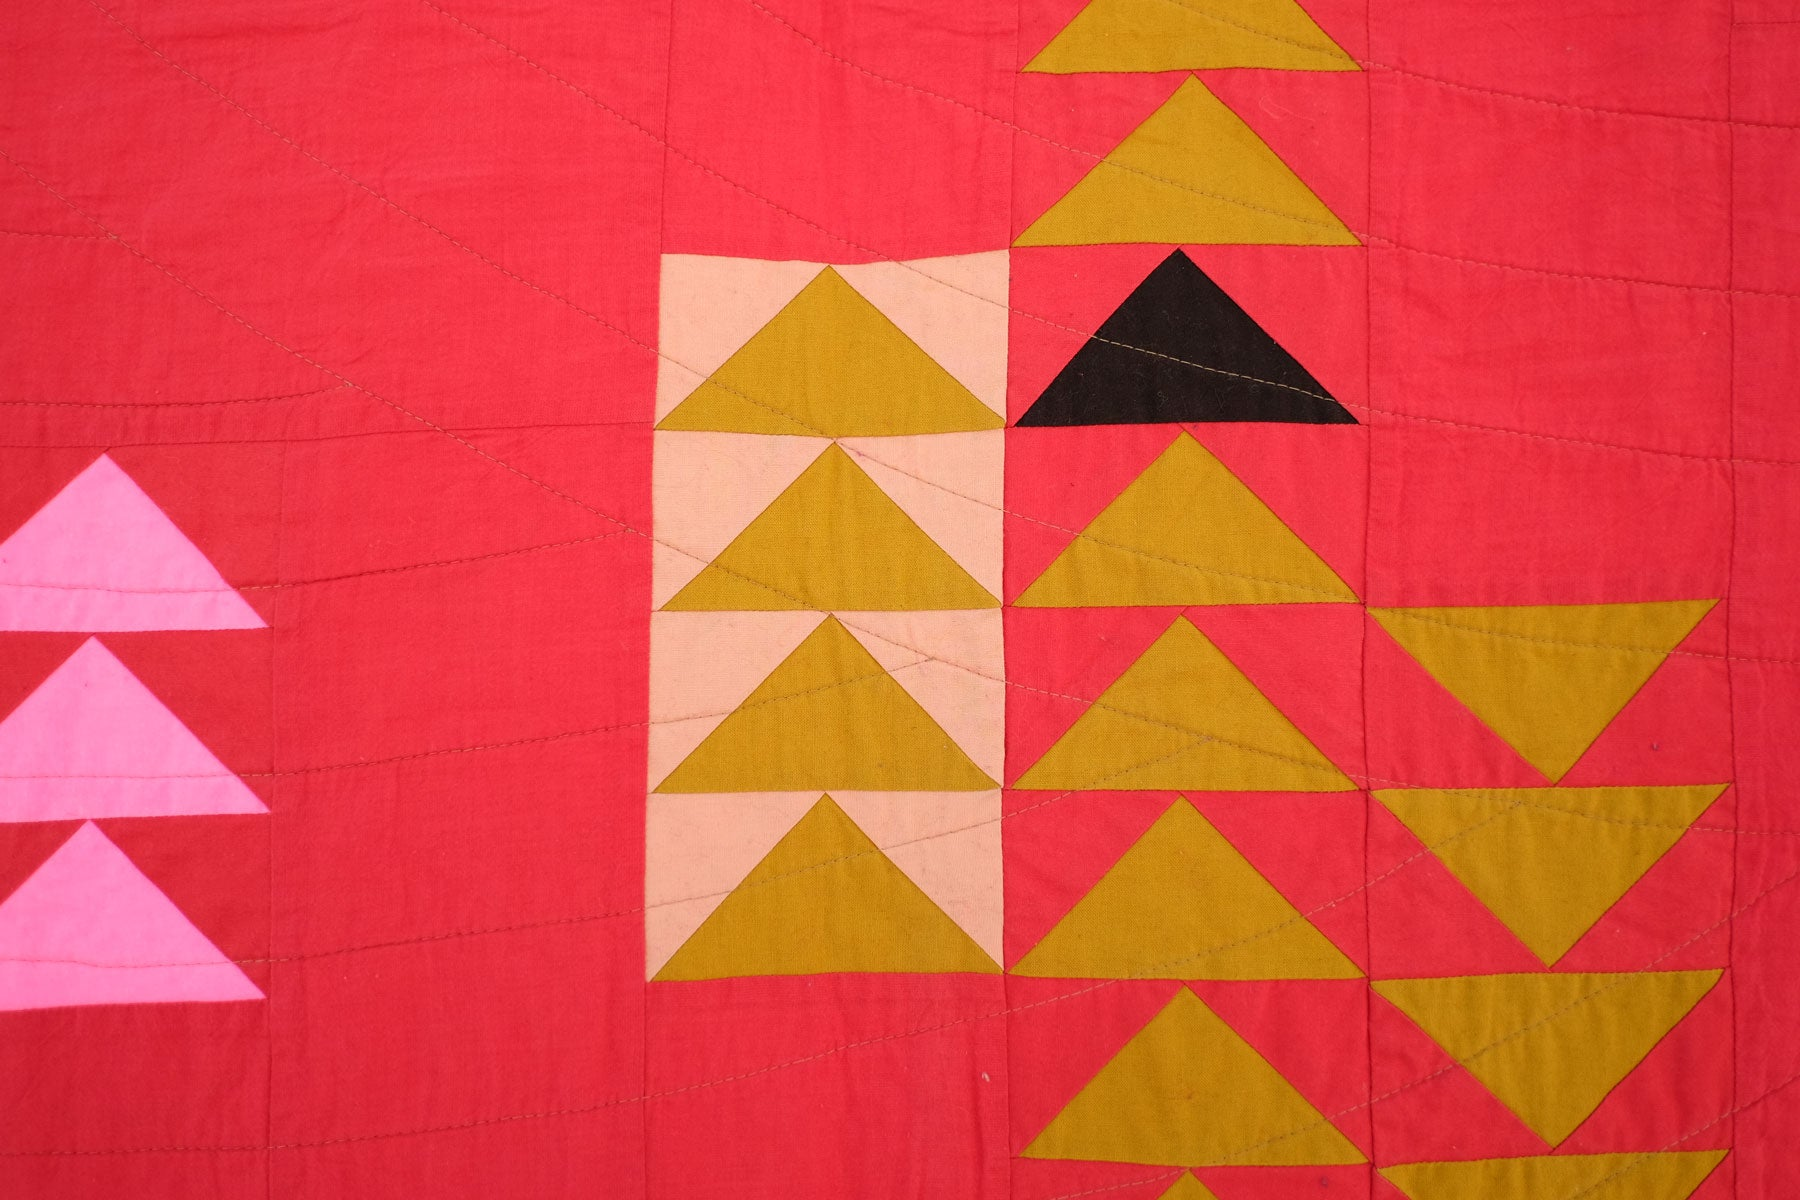 Detail of Shawna Doering's Red Hot Quilt